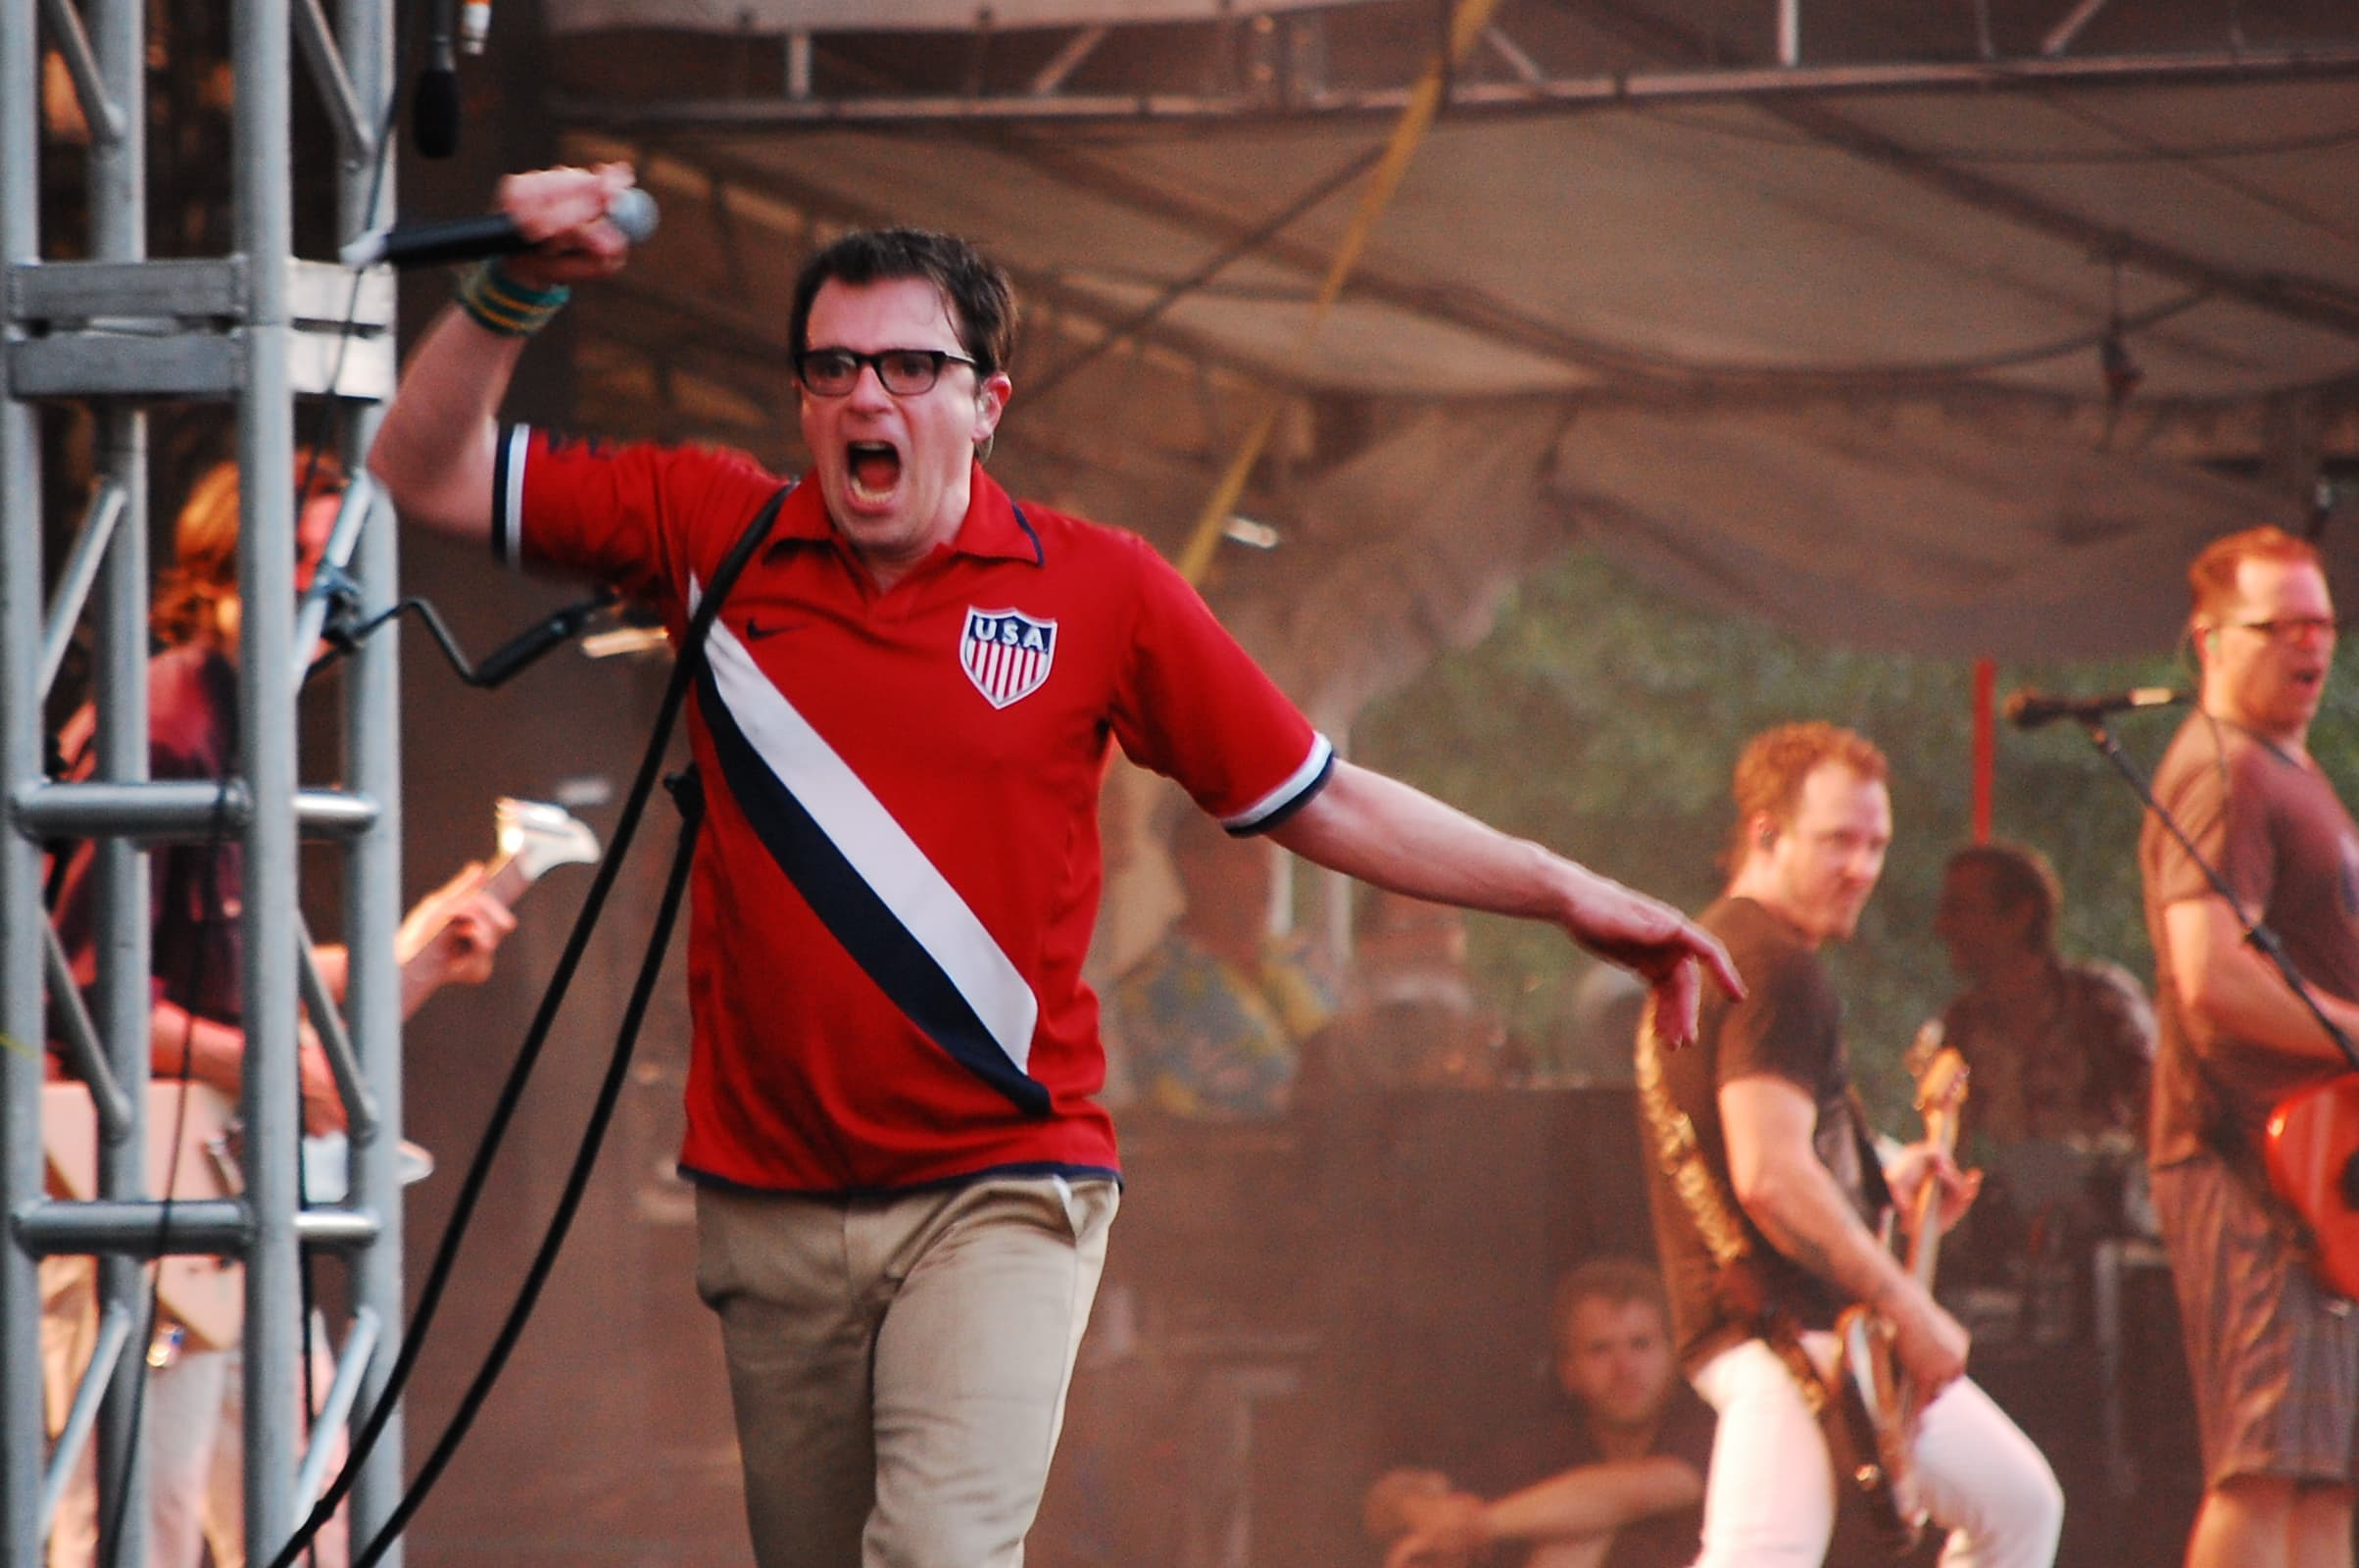 Weezer's Rivers Cuomo is ready to rock Apple's WWDC19 Bash.